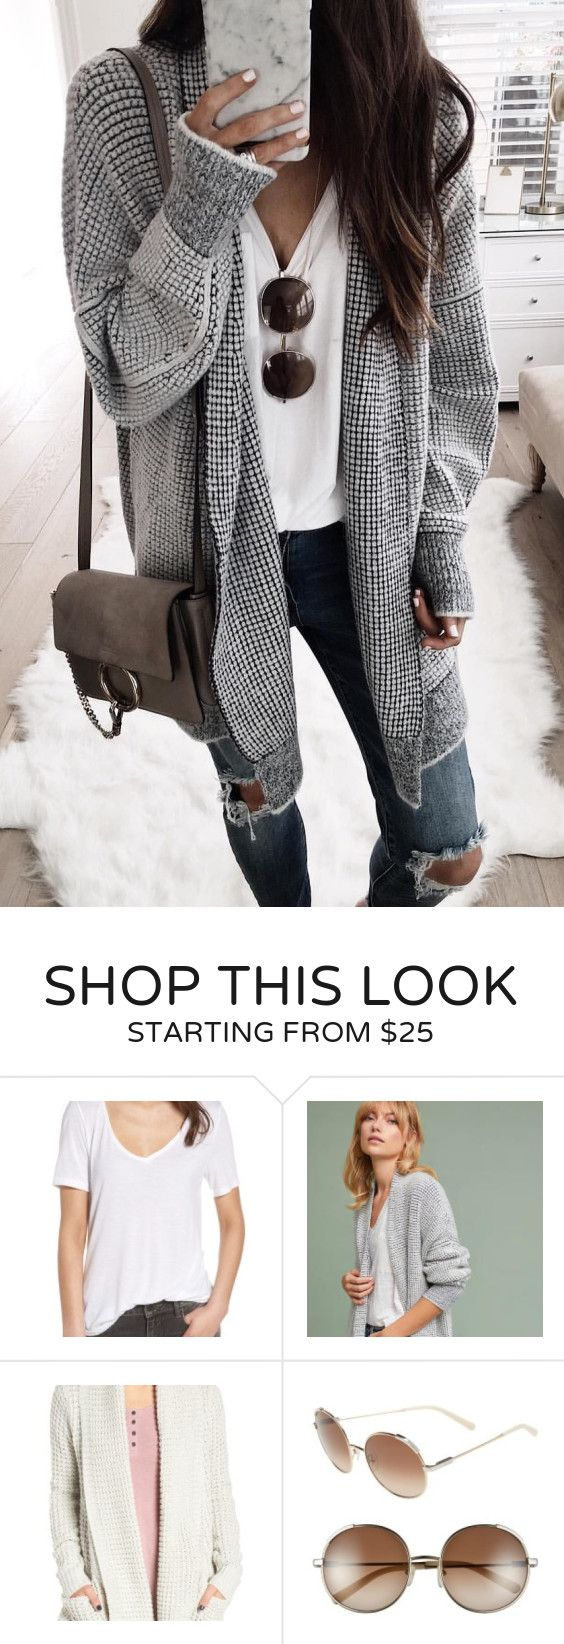 #fall #outfits women's black and gray knitted cardigan. Click To Shop This Look.